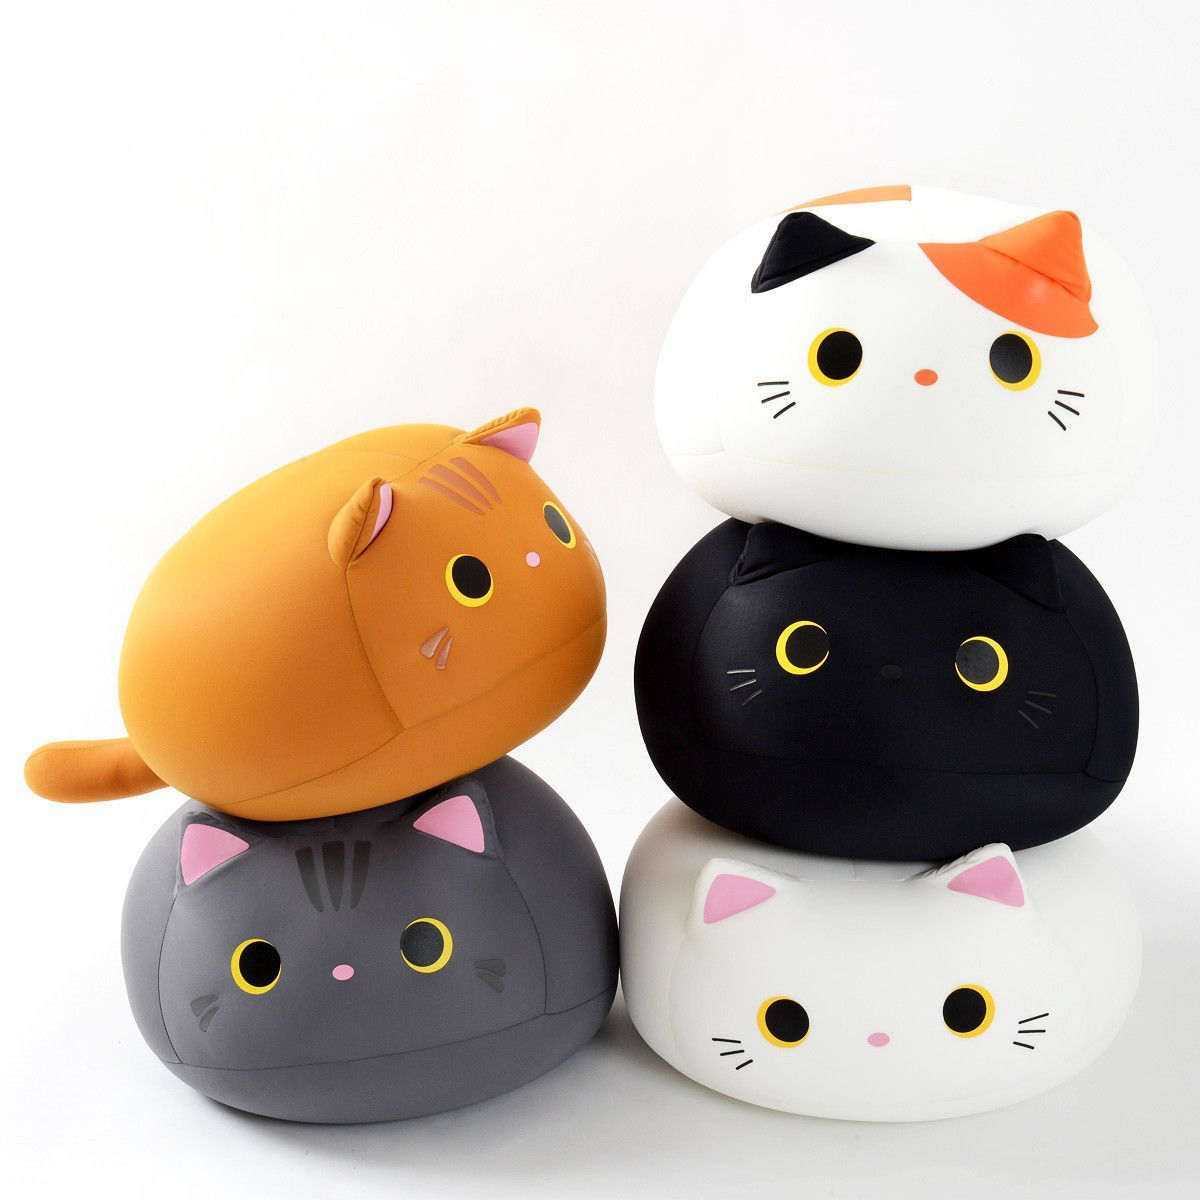 Squishy Kitty Microbead Plush Plush and Kitty